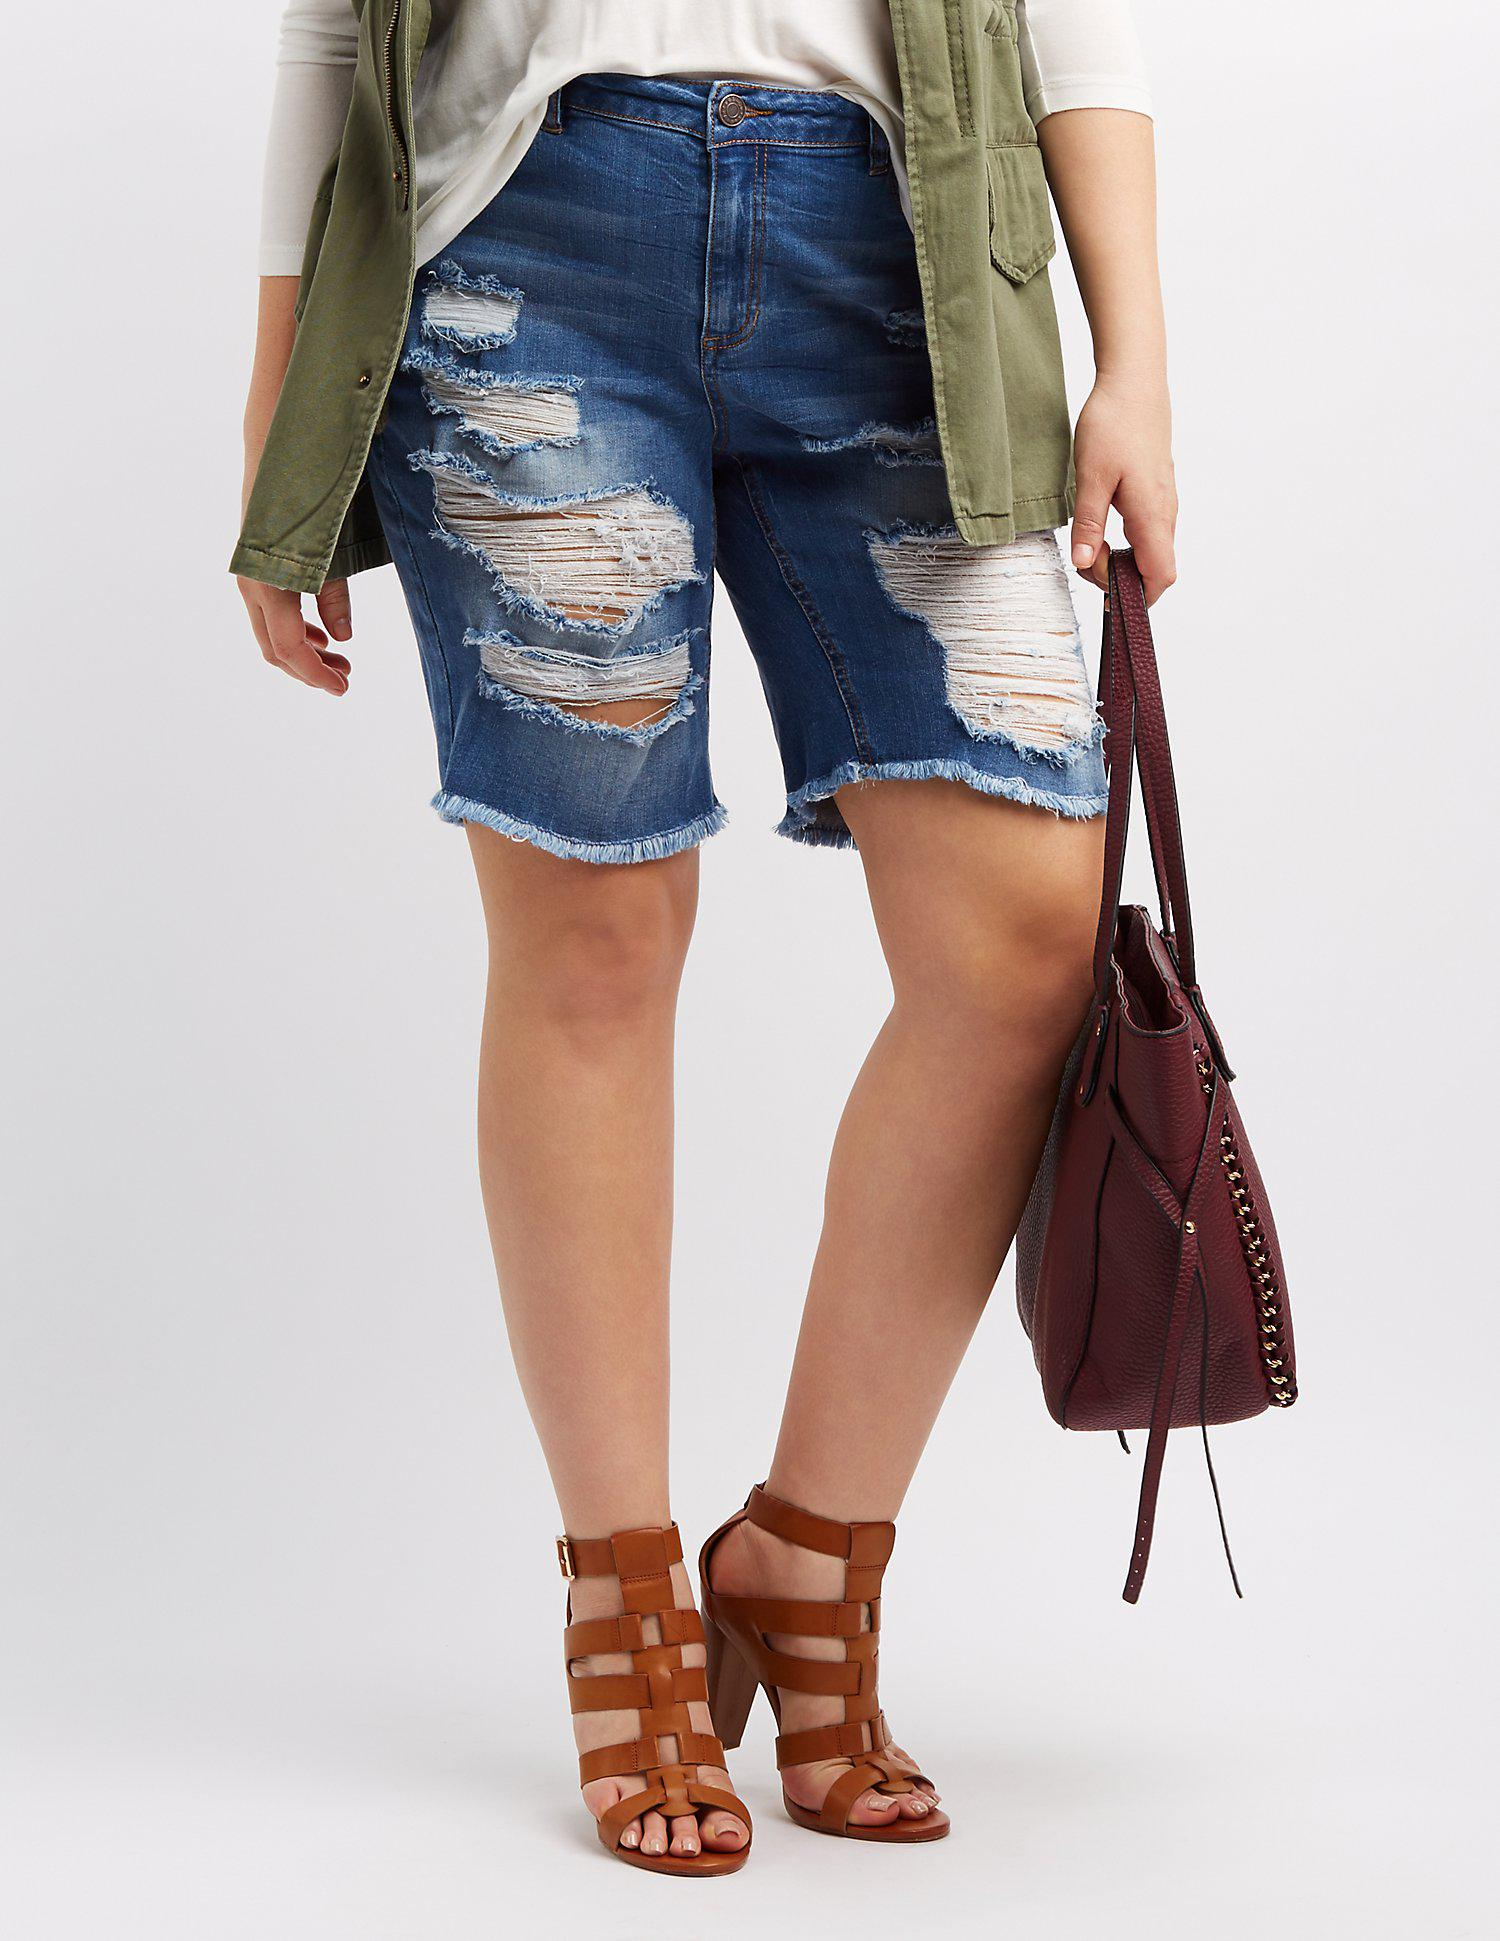 71fb3a4cba Gallery. Previously sold at: Charlotte Russe · Women's High Waisted Denim  Shorts ...